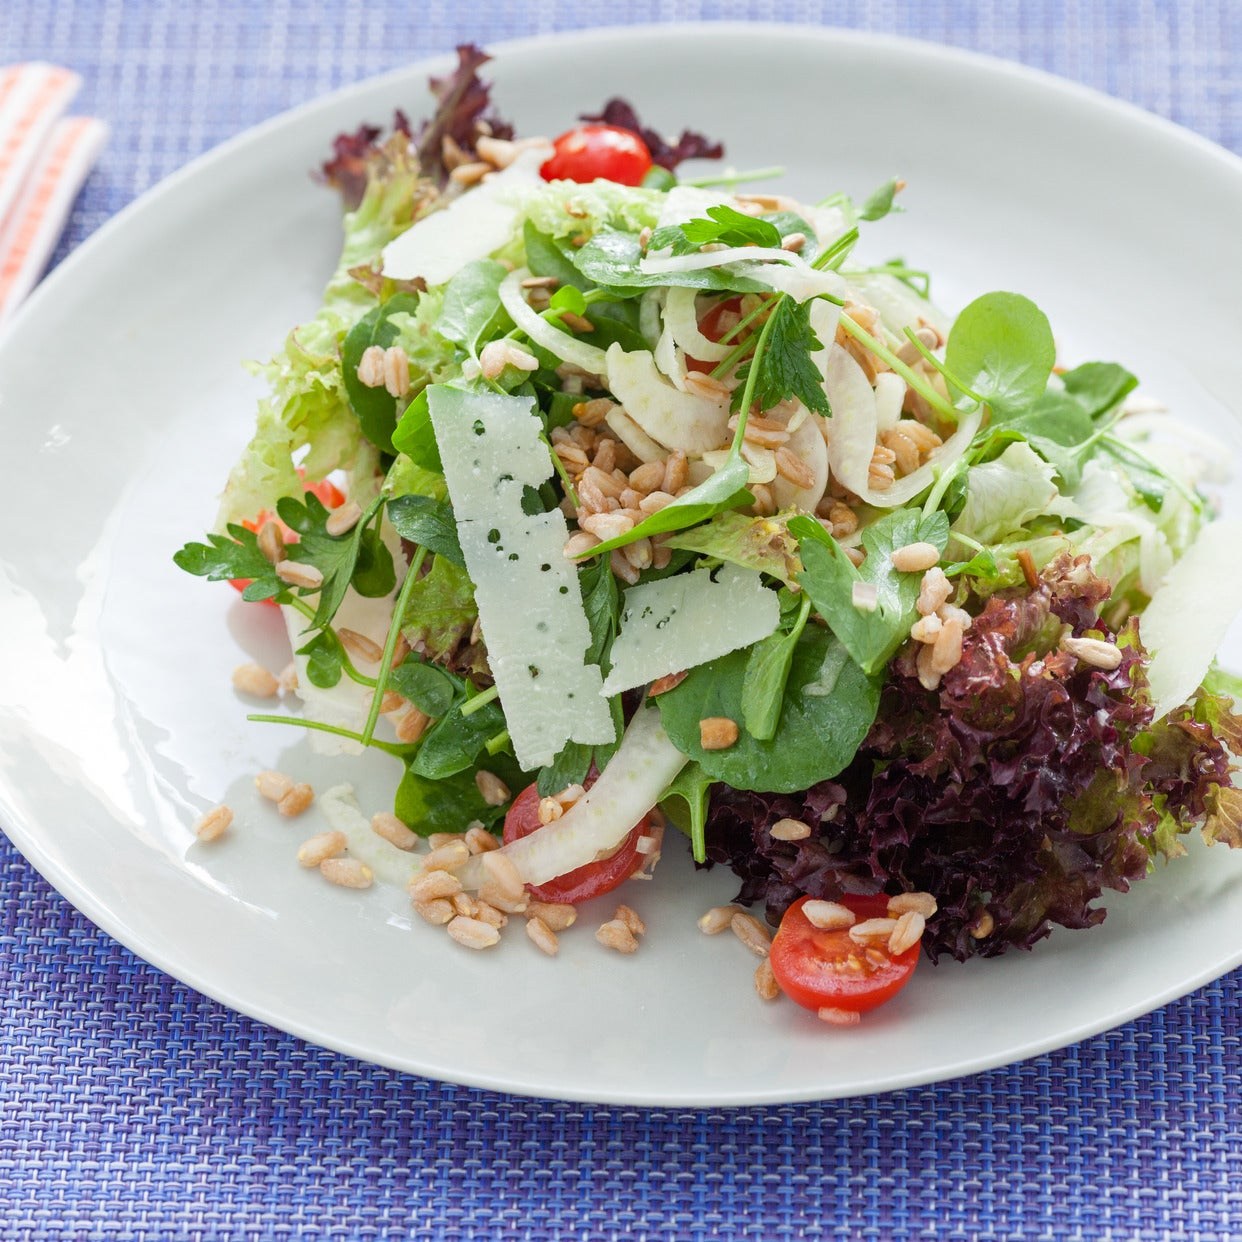 Shaved Fennel & Pecorino Salad with Lollo Rosso, Farro & Lemon Vinaigrette